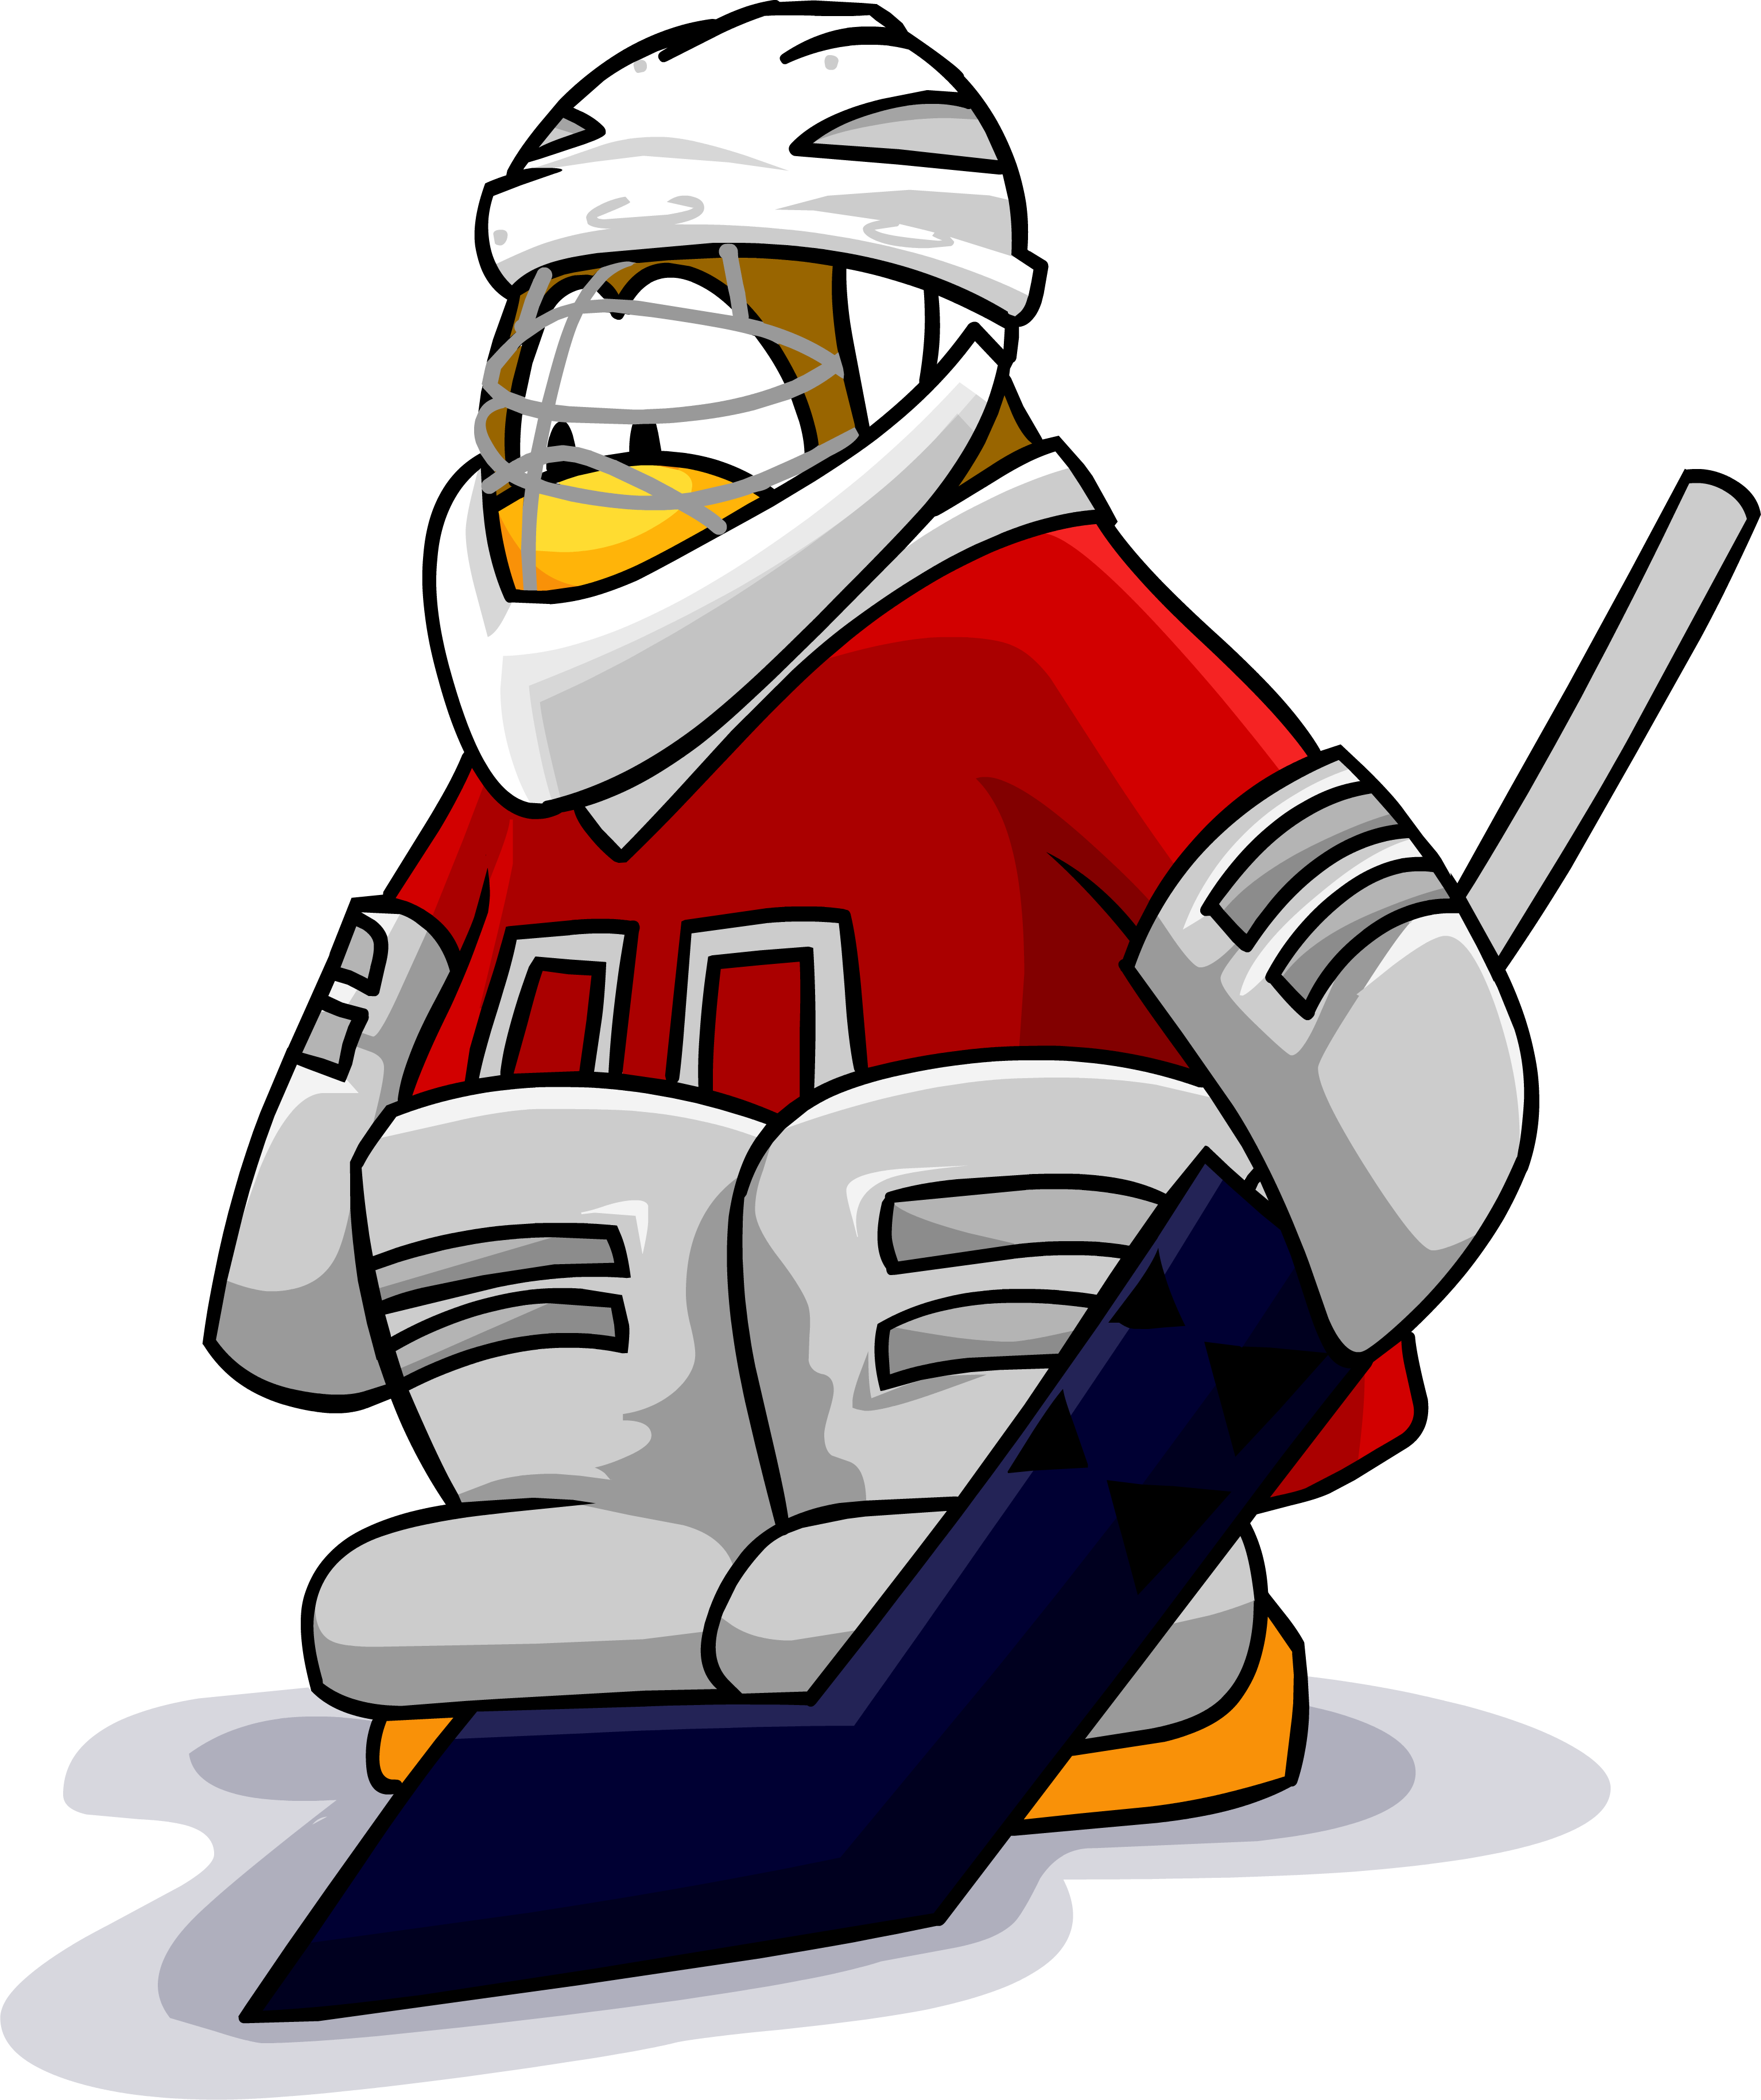 Ice Hockey Goalie Clipart At Getdrawings Com Free For Personal Use